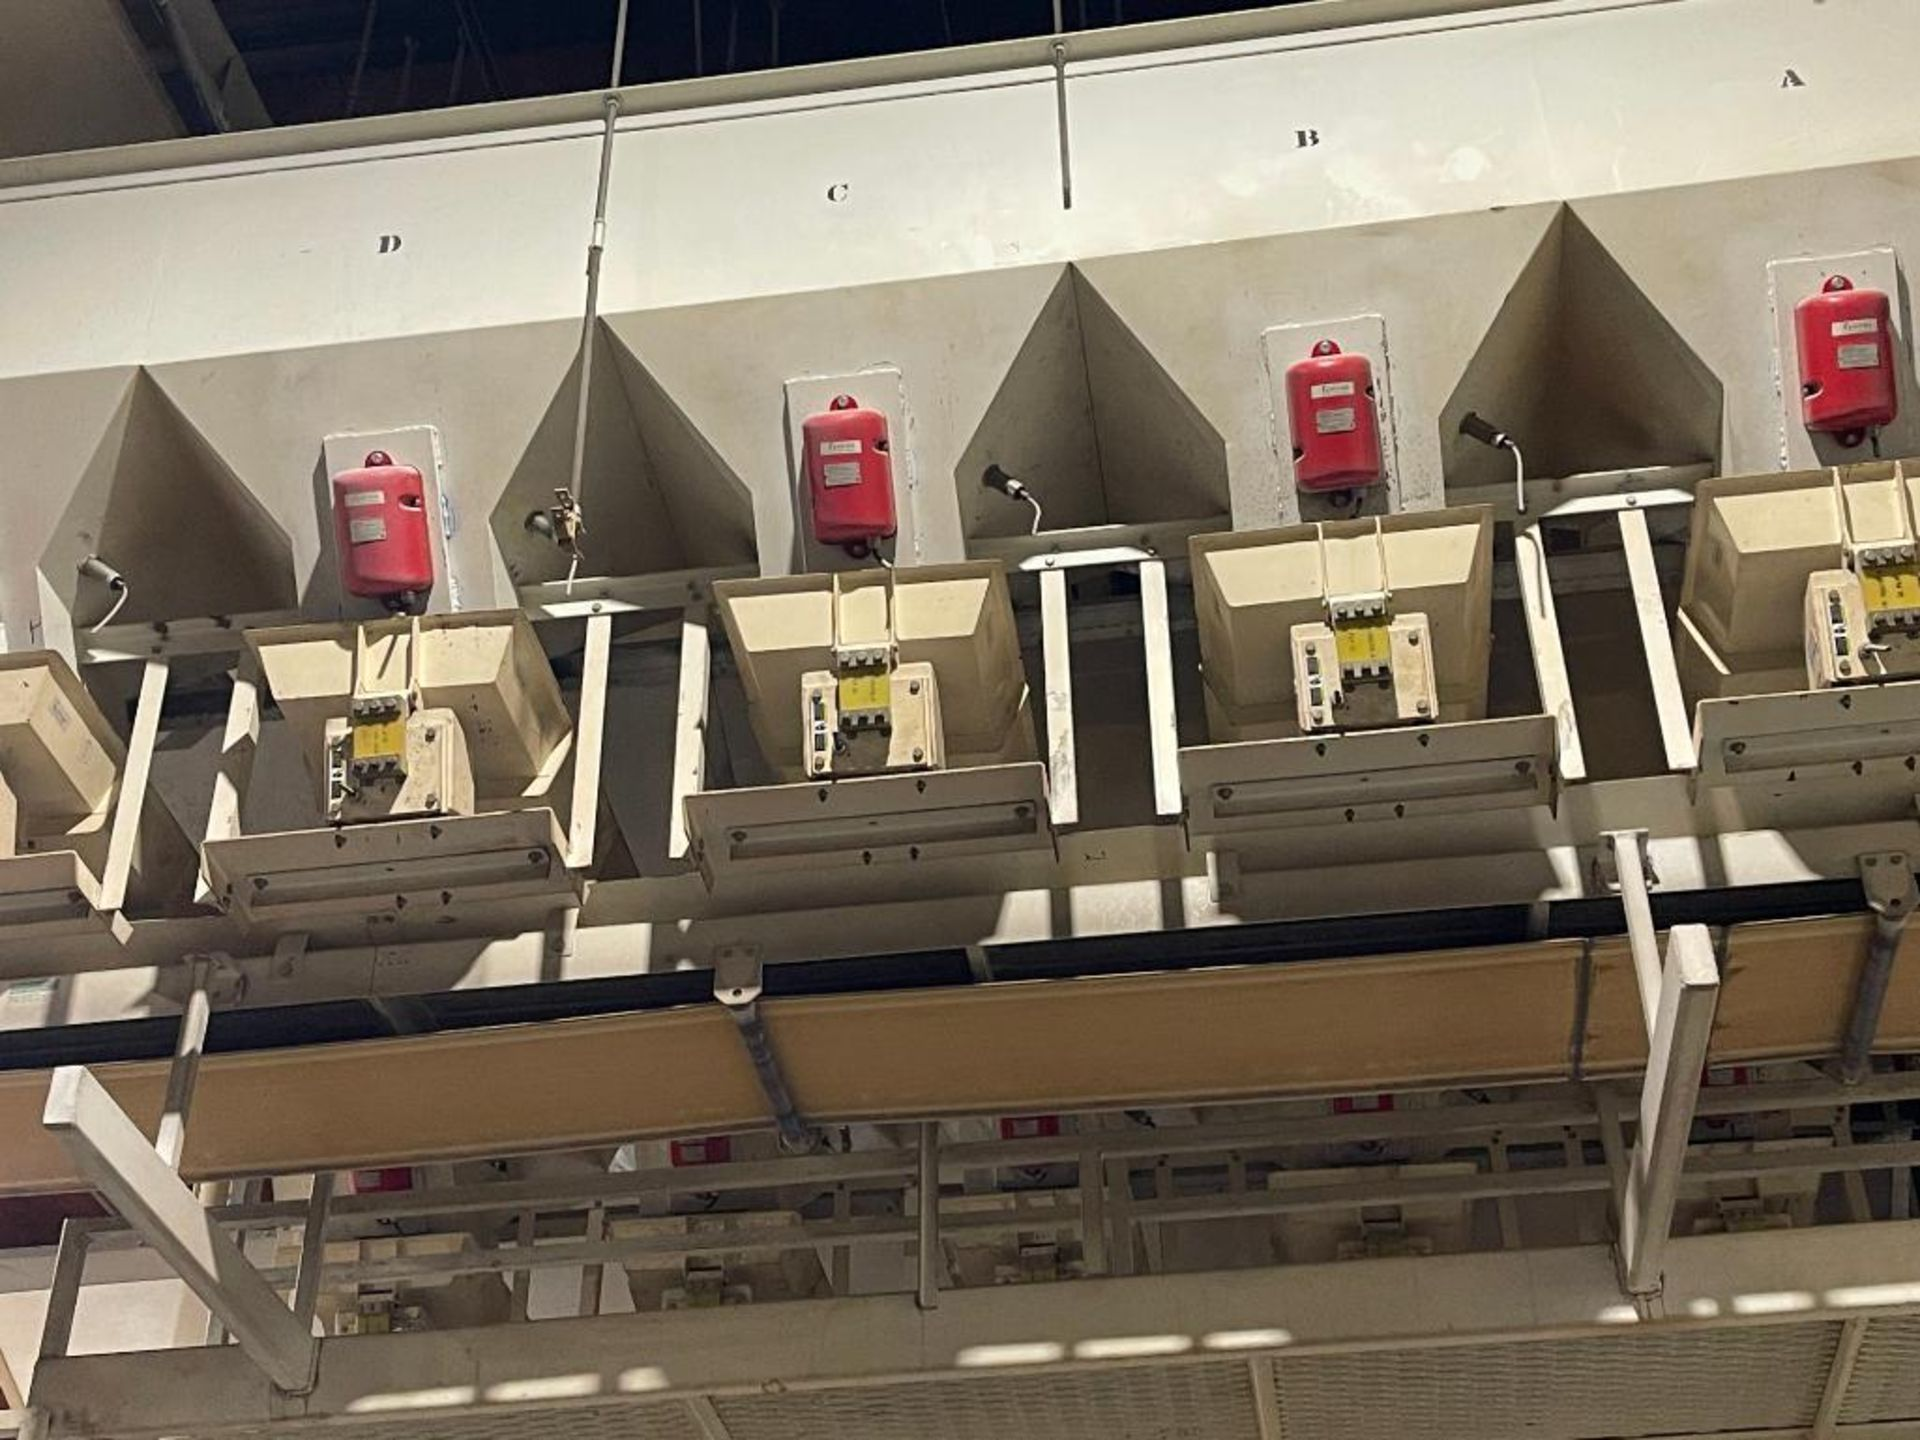 Aseeco 5-bin blending system with 5 Syntron vibratory feeders on bottom - Image 6 of 6